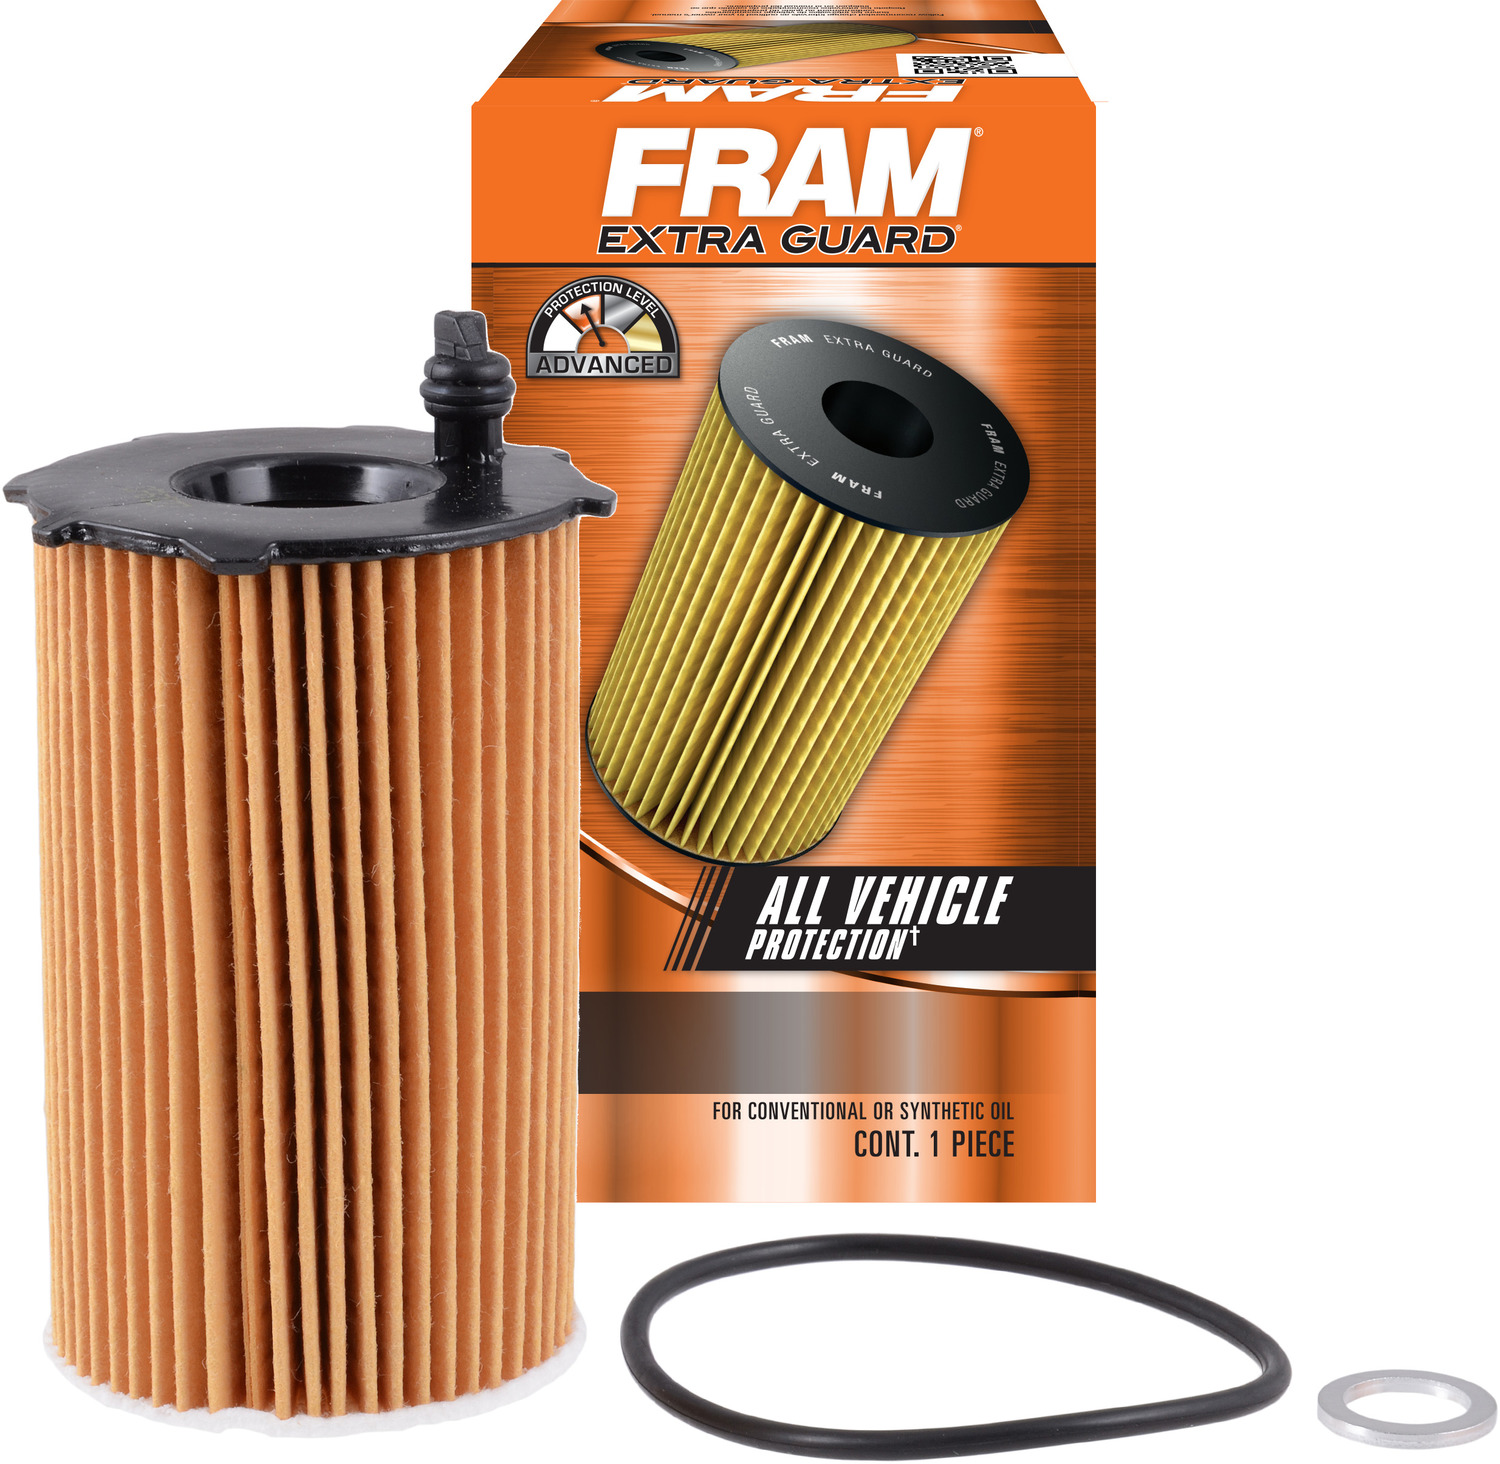 Fram G4 Fuel Filter Catalog Wiring Diagrams Performance Extra Guard Oil Ch10855 Walmart Com Assembly